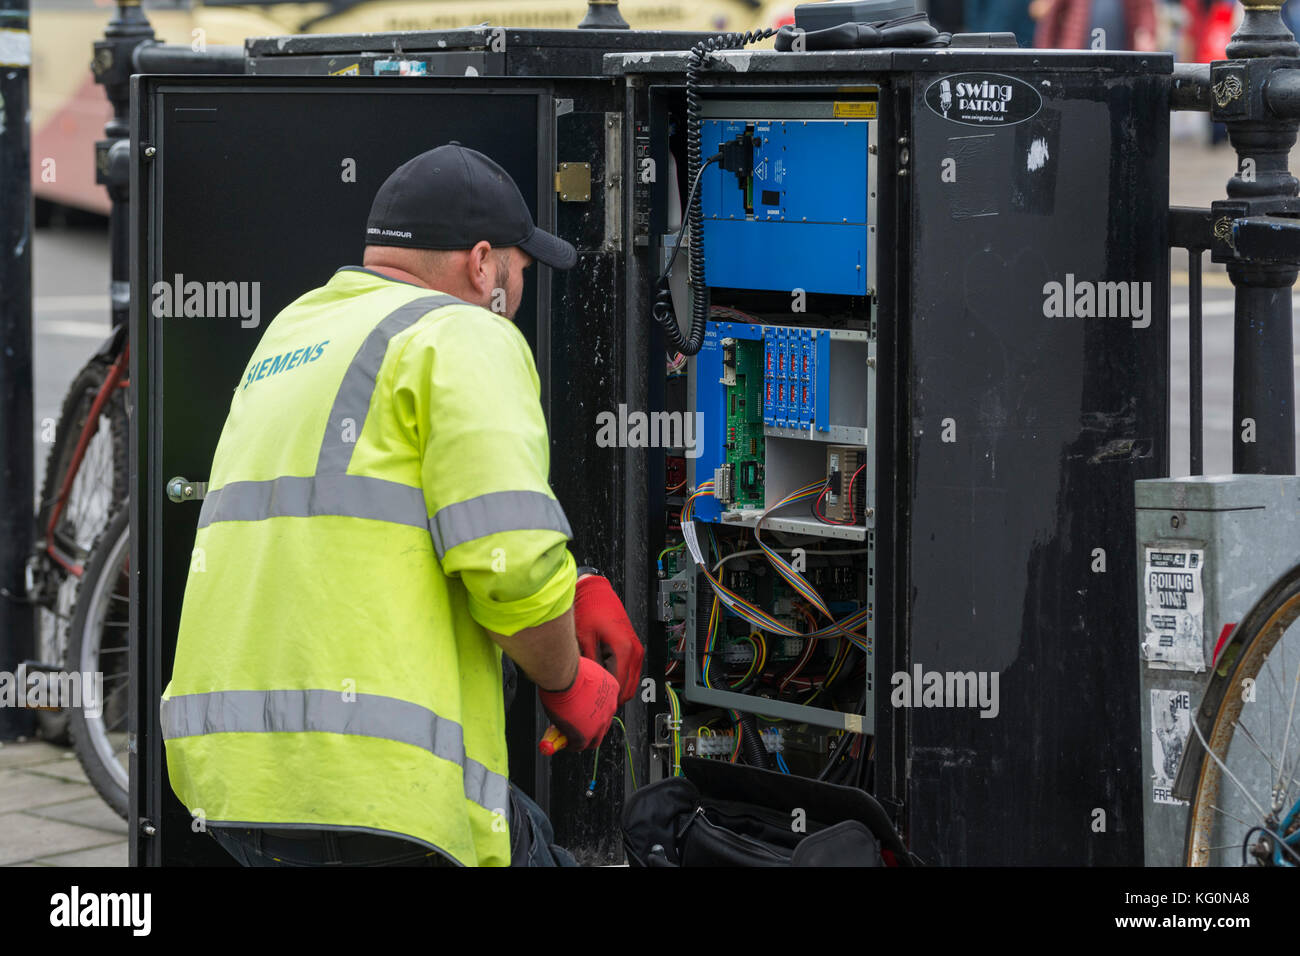 Siemens employee performing maintenance on a communications cabinet in the street in the UK. - Stock Image